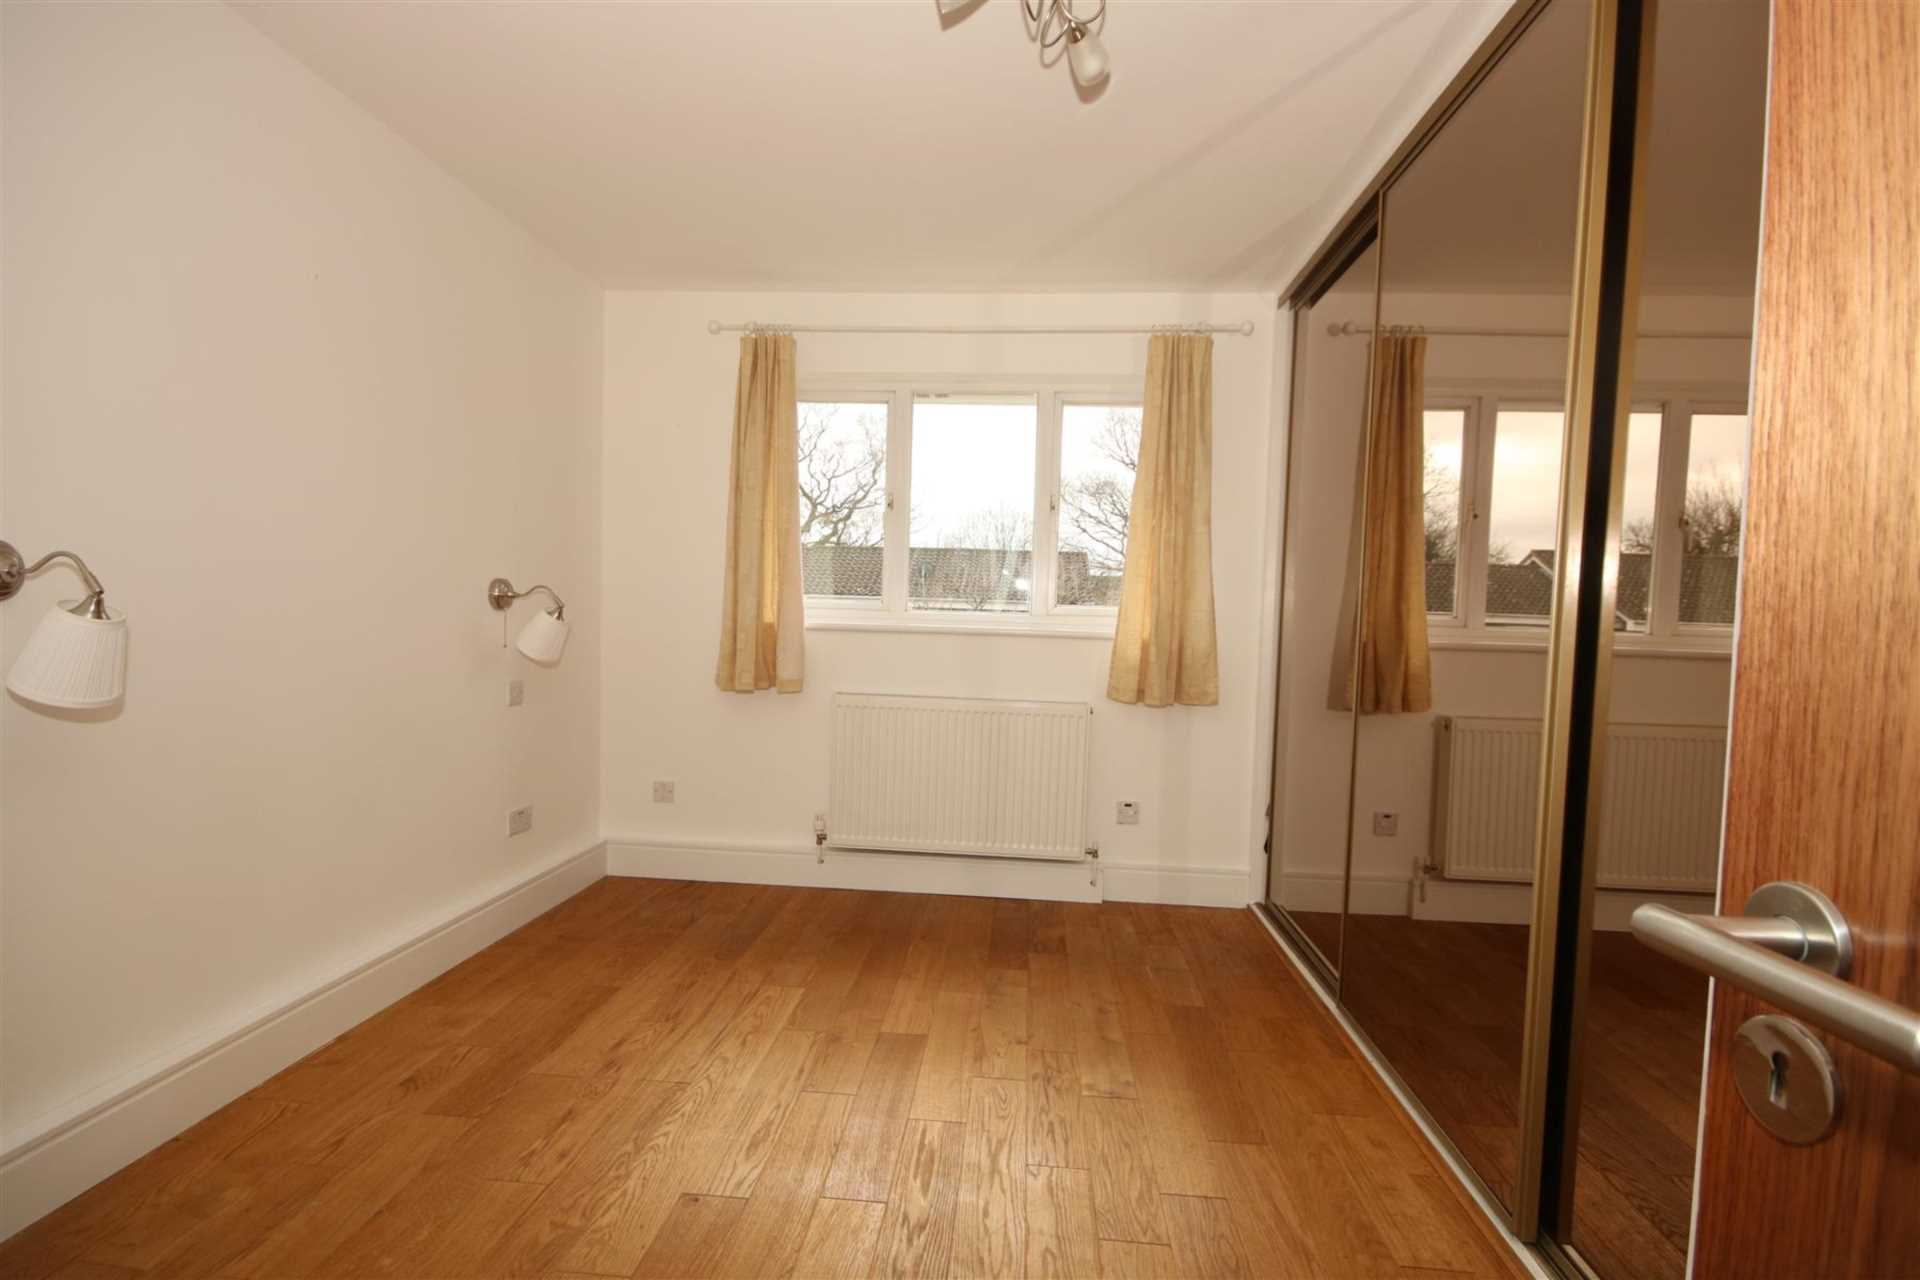 LOVELY 1 BED HOUSE IN CUL DE SAC WITH GARDEN, Image 5